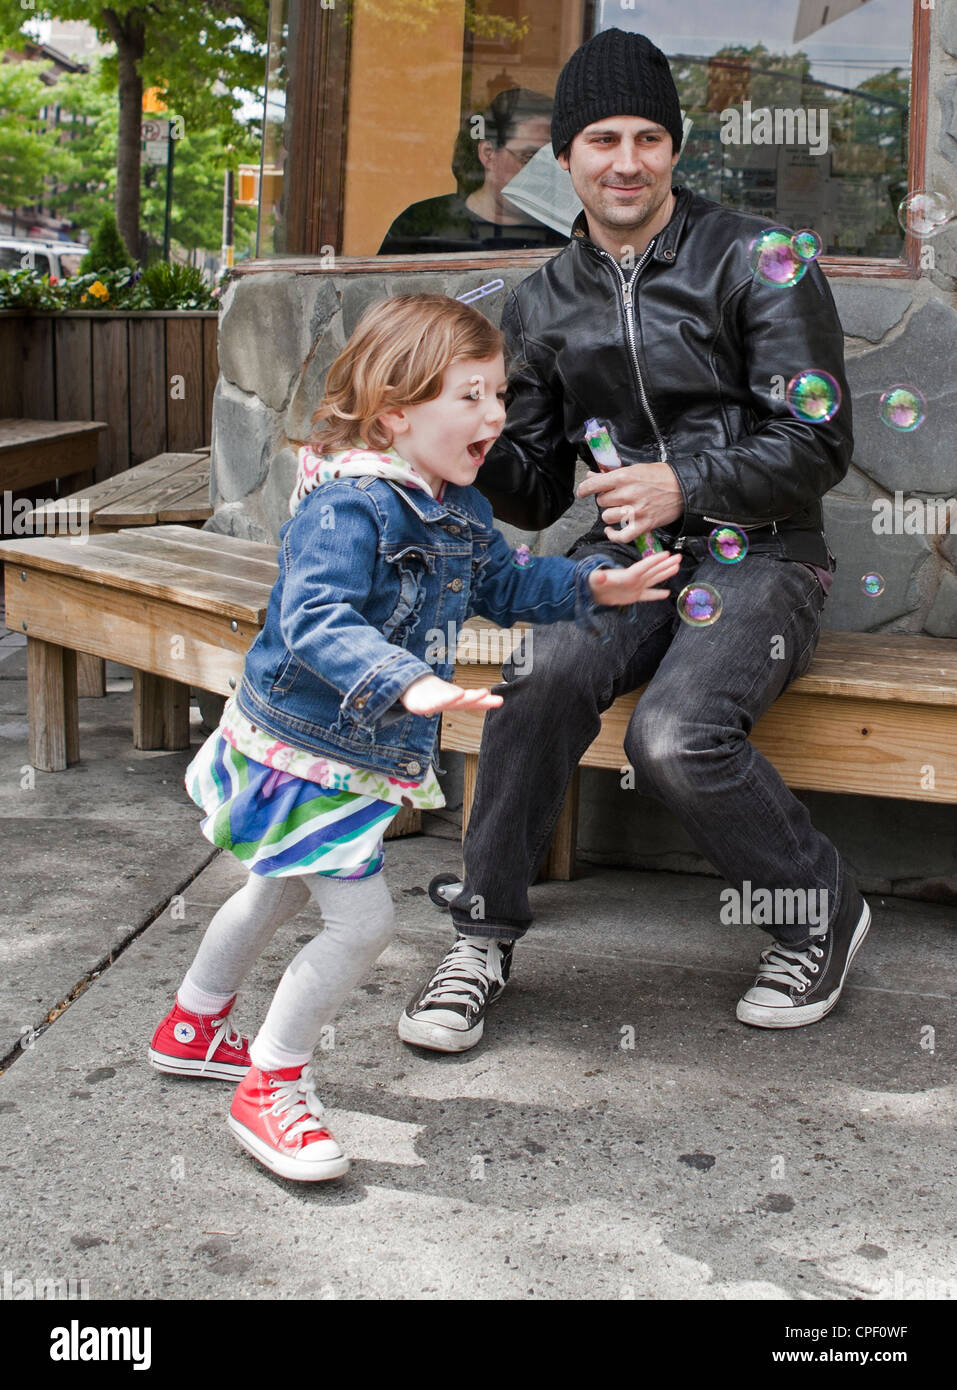 A father and daughter share time by blowing and chasing bubbles on a Sunday morning in Brooklyn. - Stock Image